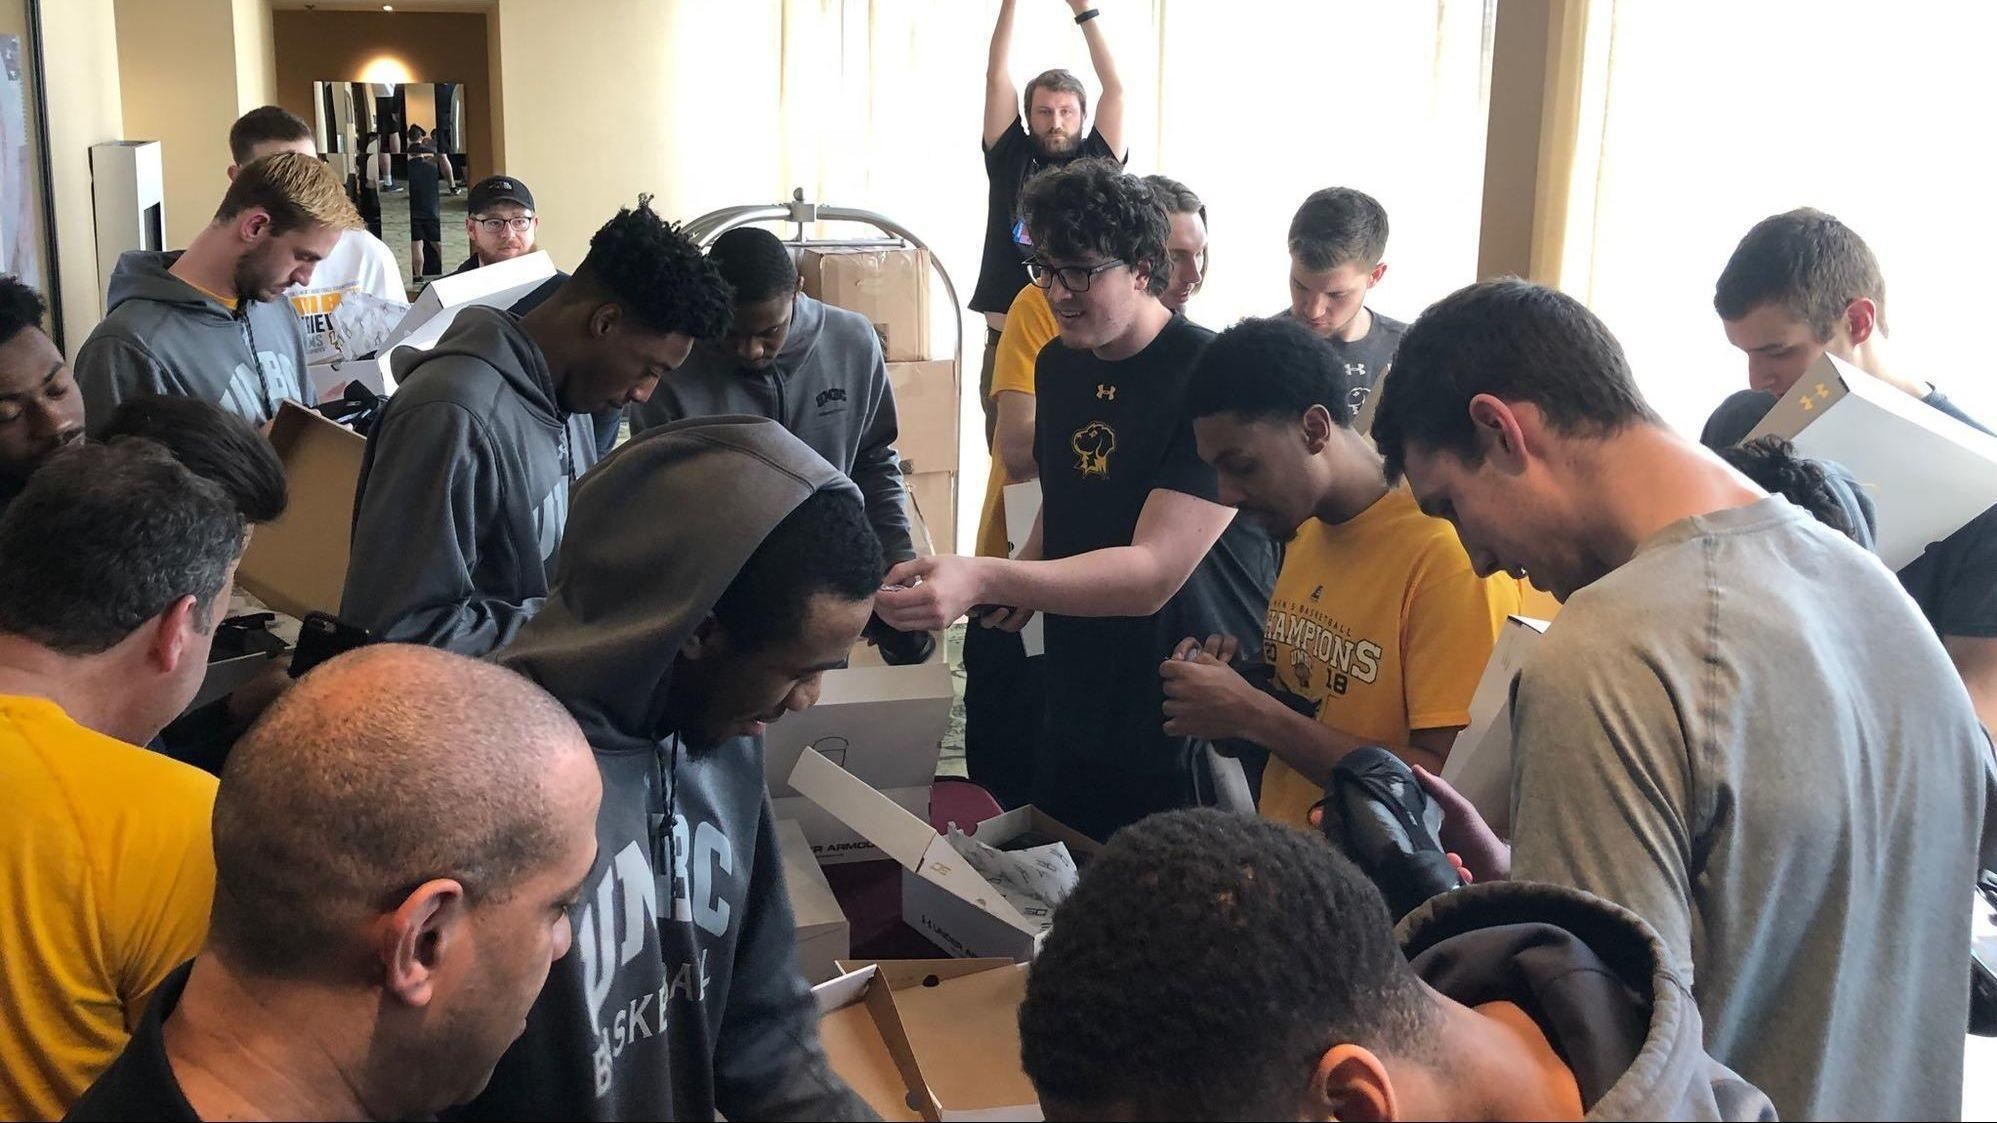 UMBC team got special delivery of newest Stephen Curry basketball shoe